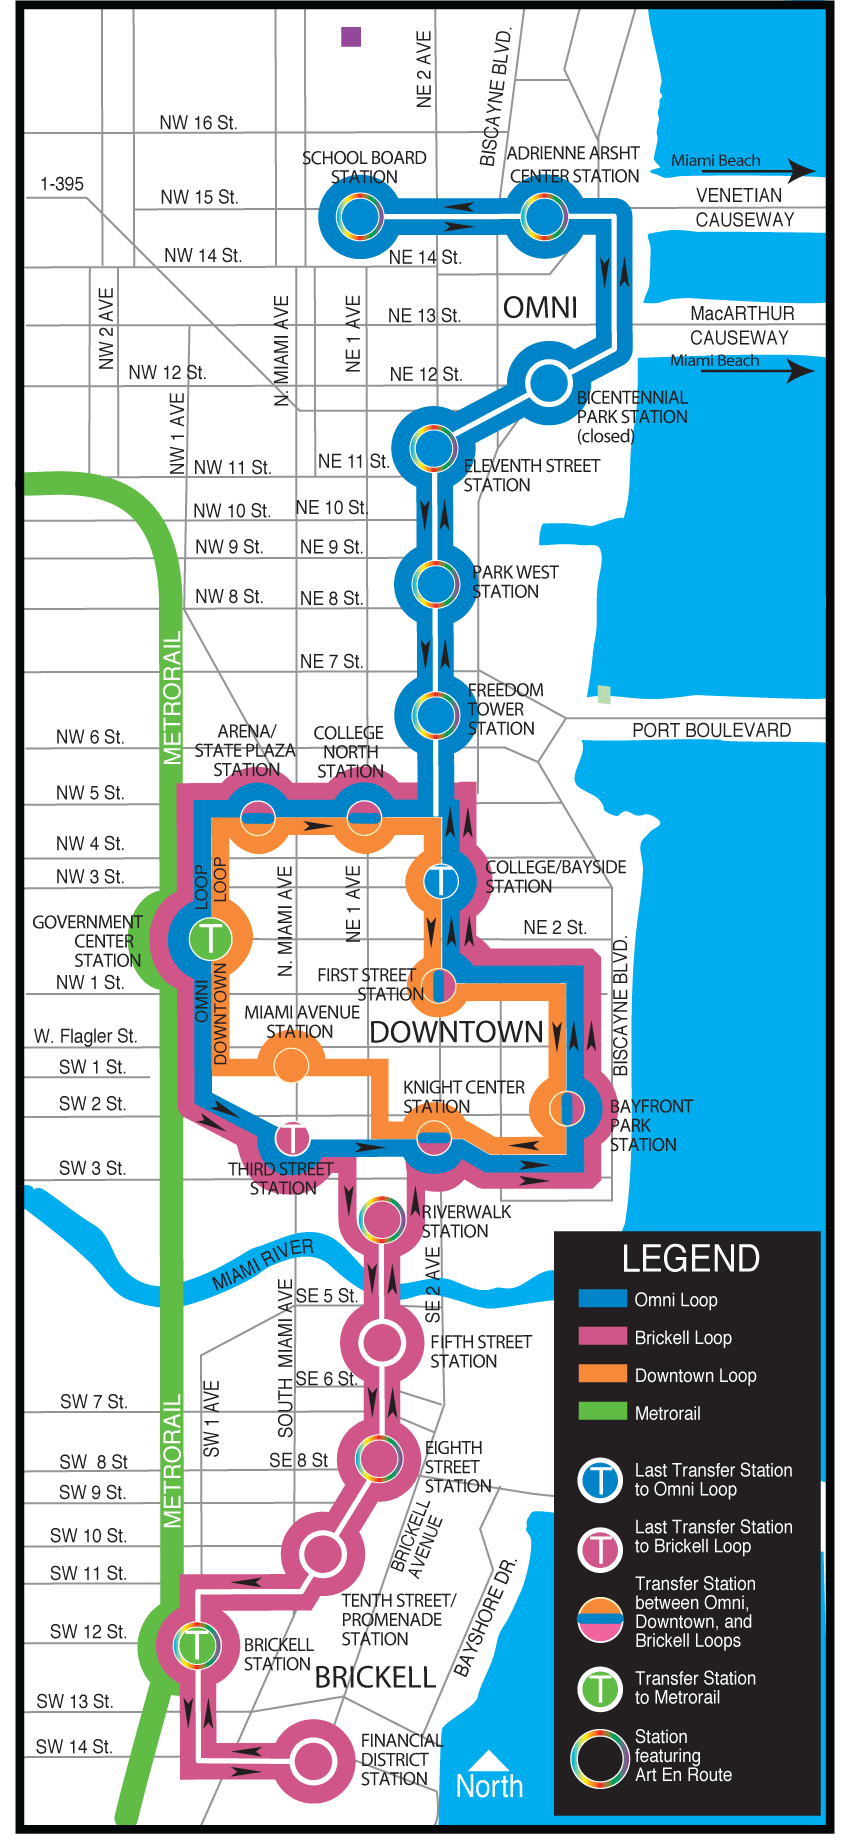 Subway Map Holiday.Pin By Randall Robinson On Metro Maps In 2019 Miami Florida